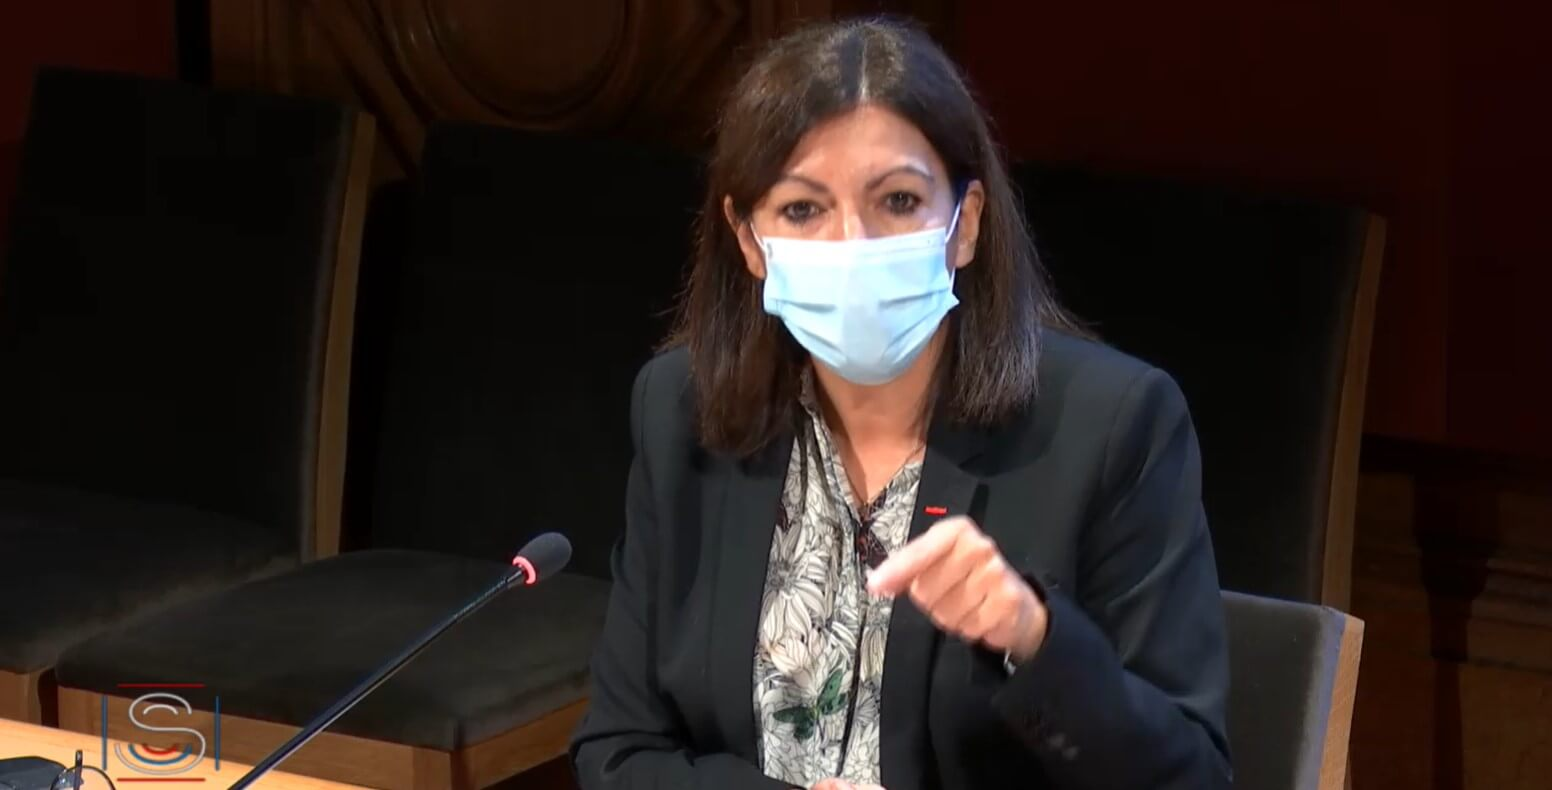 Anne Hidalgo confirme son opposition à un confinement de Paris le week-end